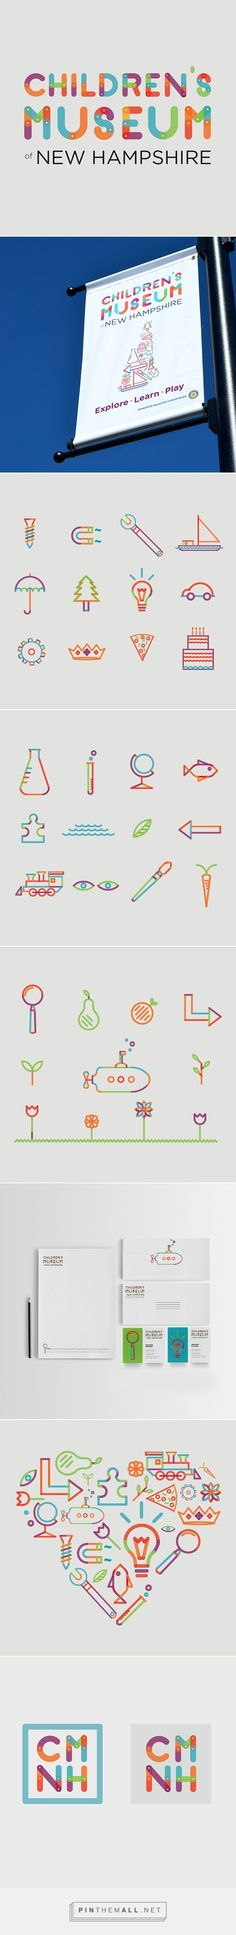 Children's Museum of New Hampshire Re-Brand on Behance - created via